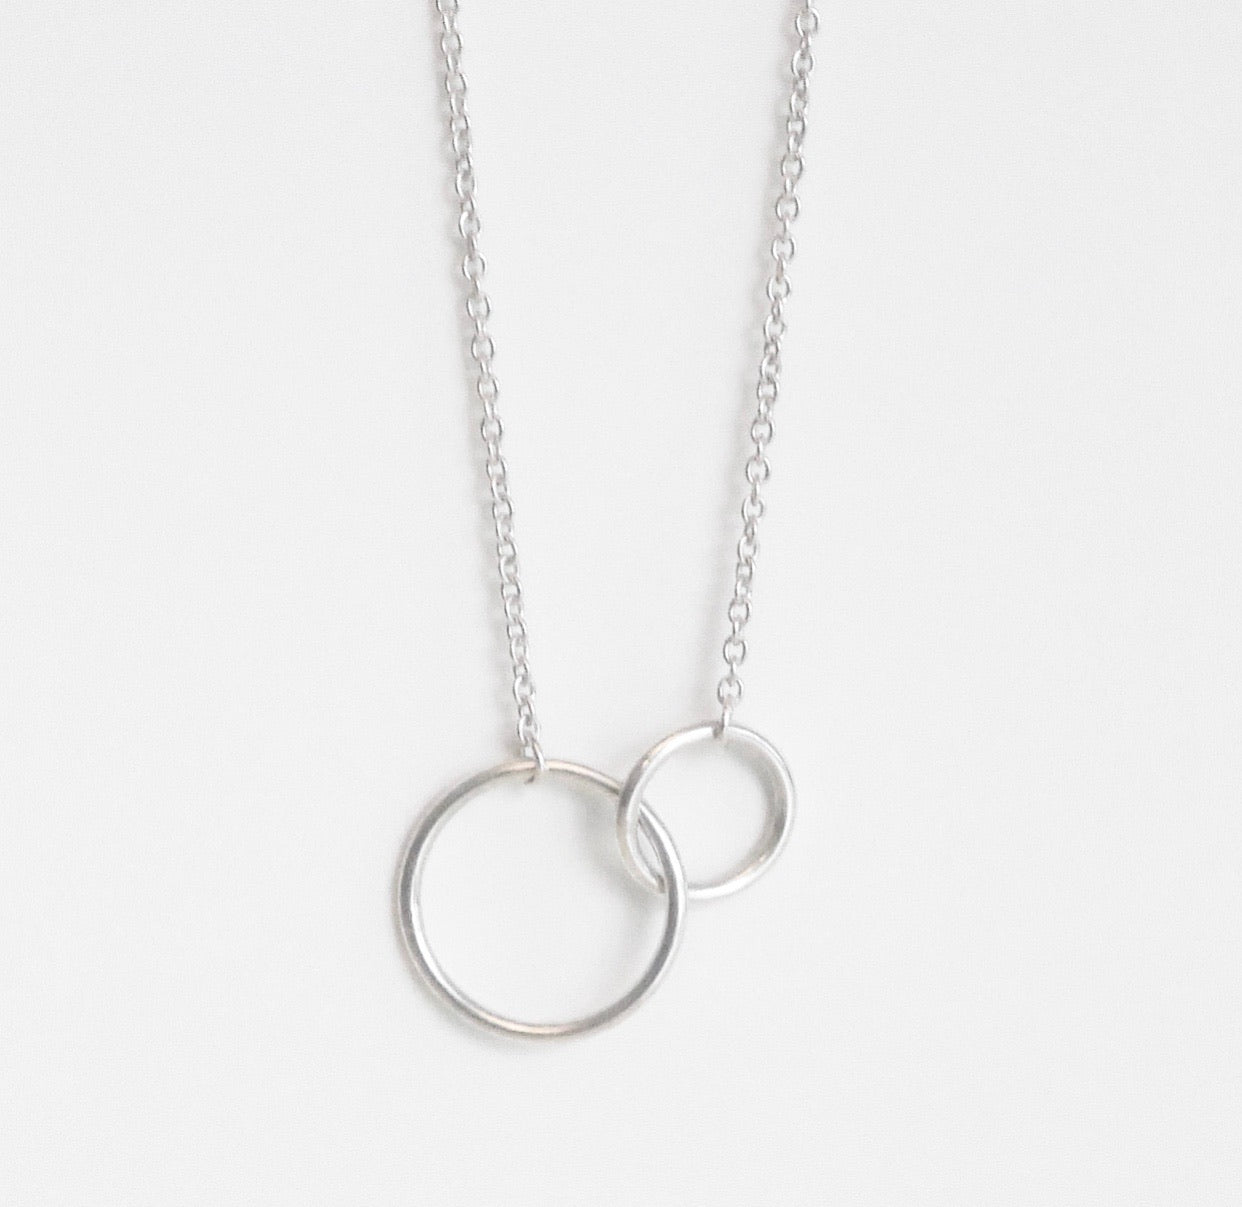 link necklace circle link necklace interlock necklace in sterling silver jewelry gifts gifts for friends cute necklace circle necklace interlock necklace necklace with two circles kesleyboutique girlwith3jobs